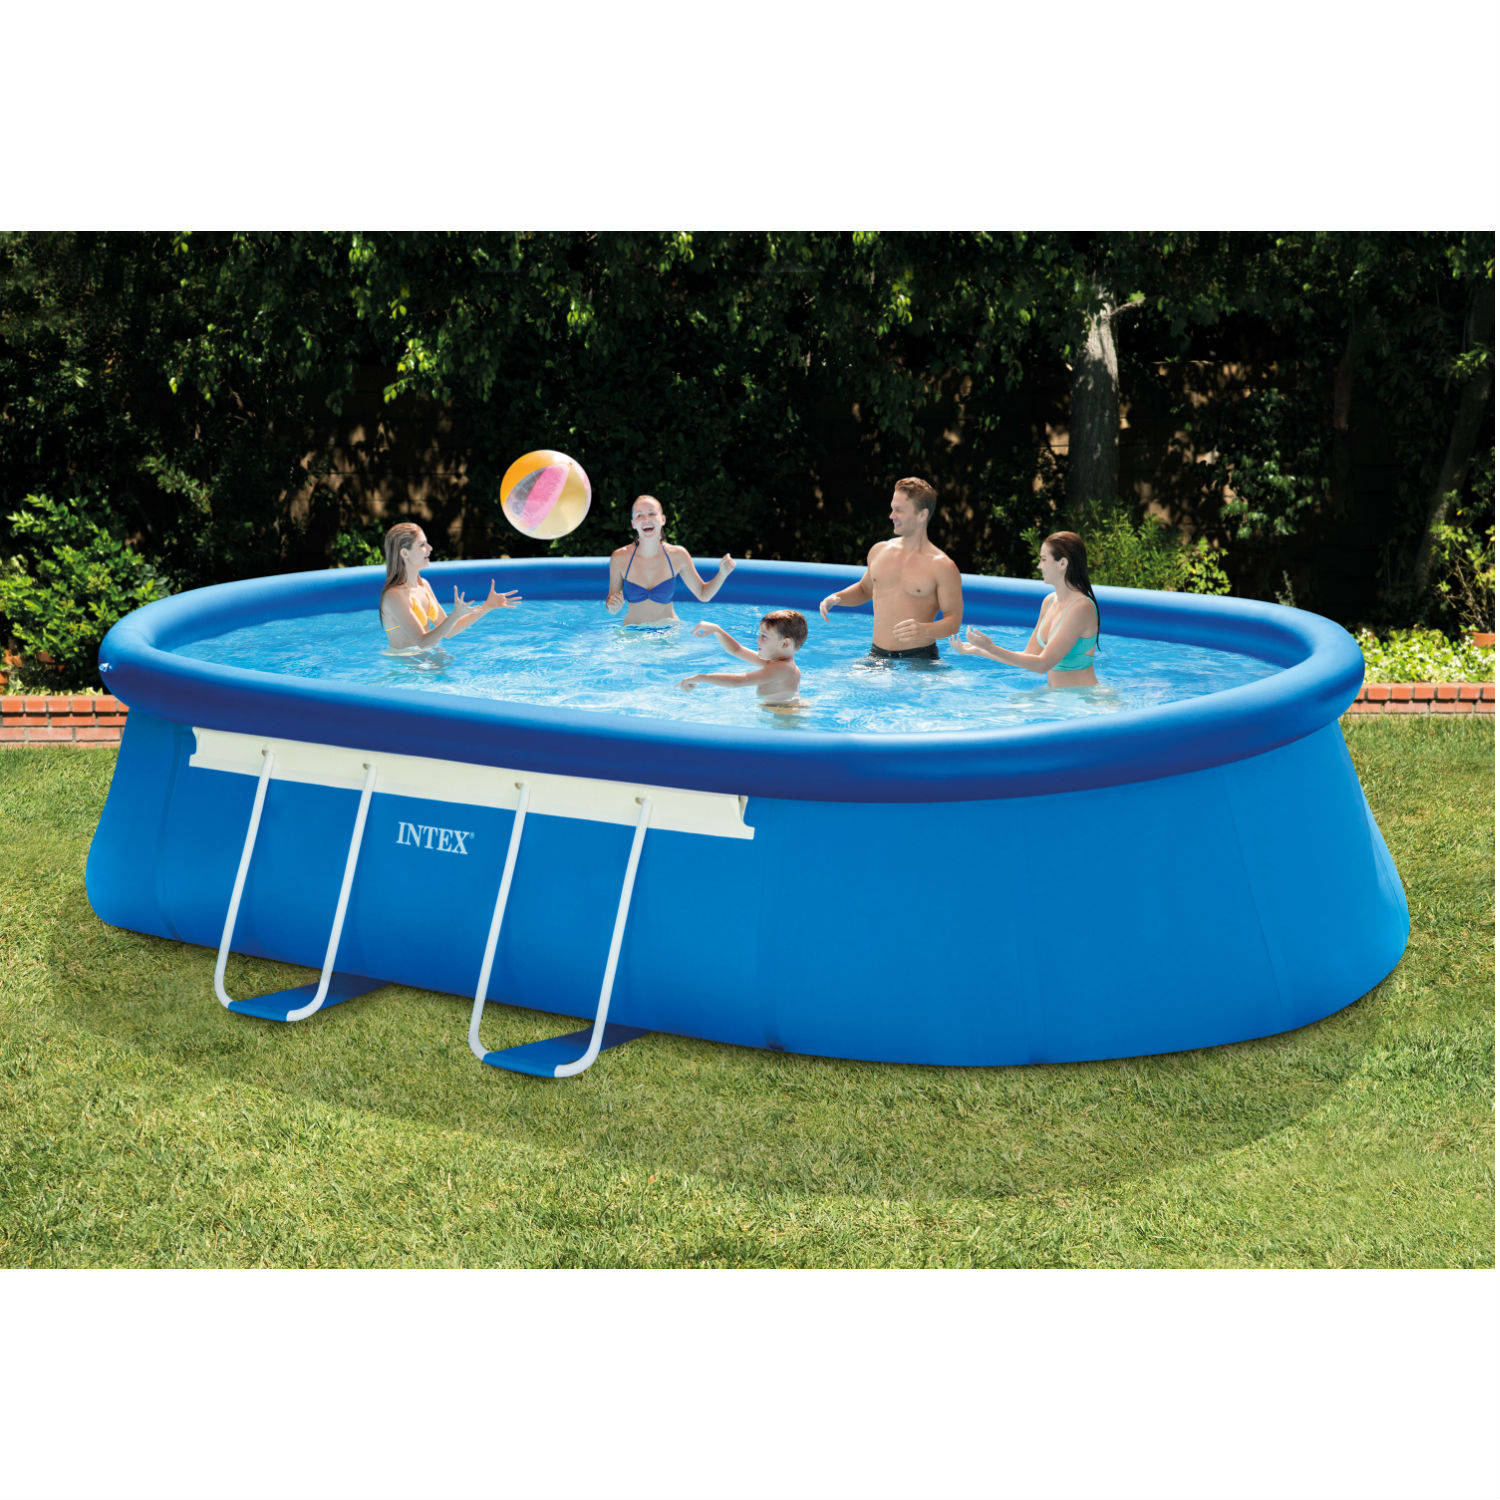 """Intex Pools intex 18' x 10' x 42"""" oval frame above ground swimming pool with"""